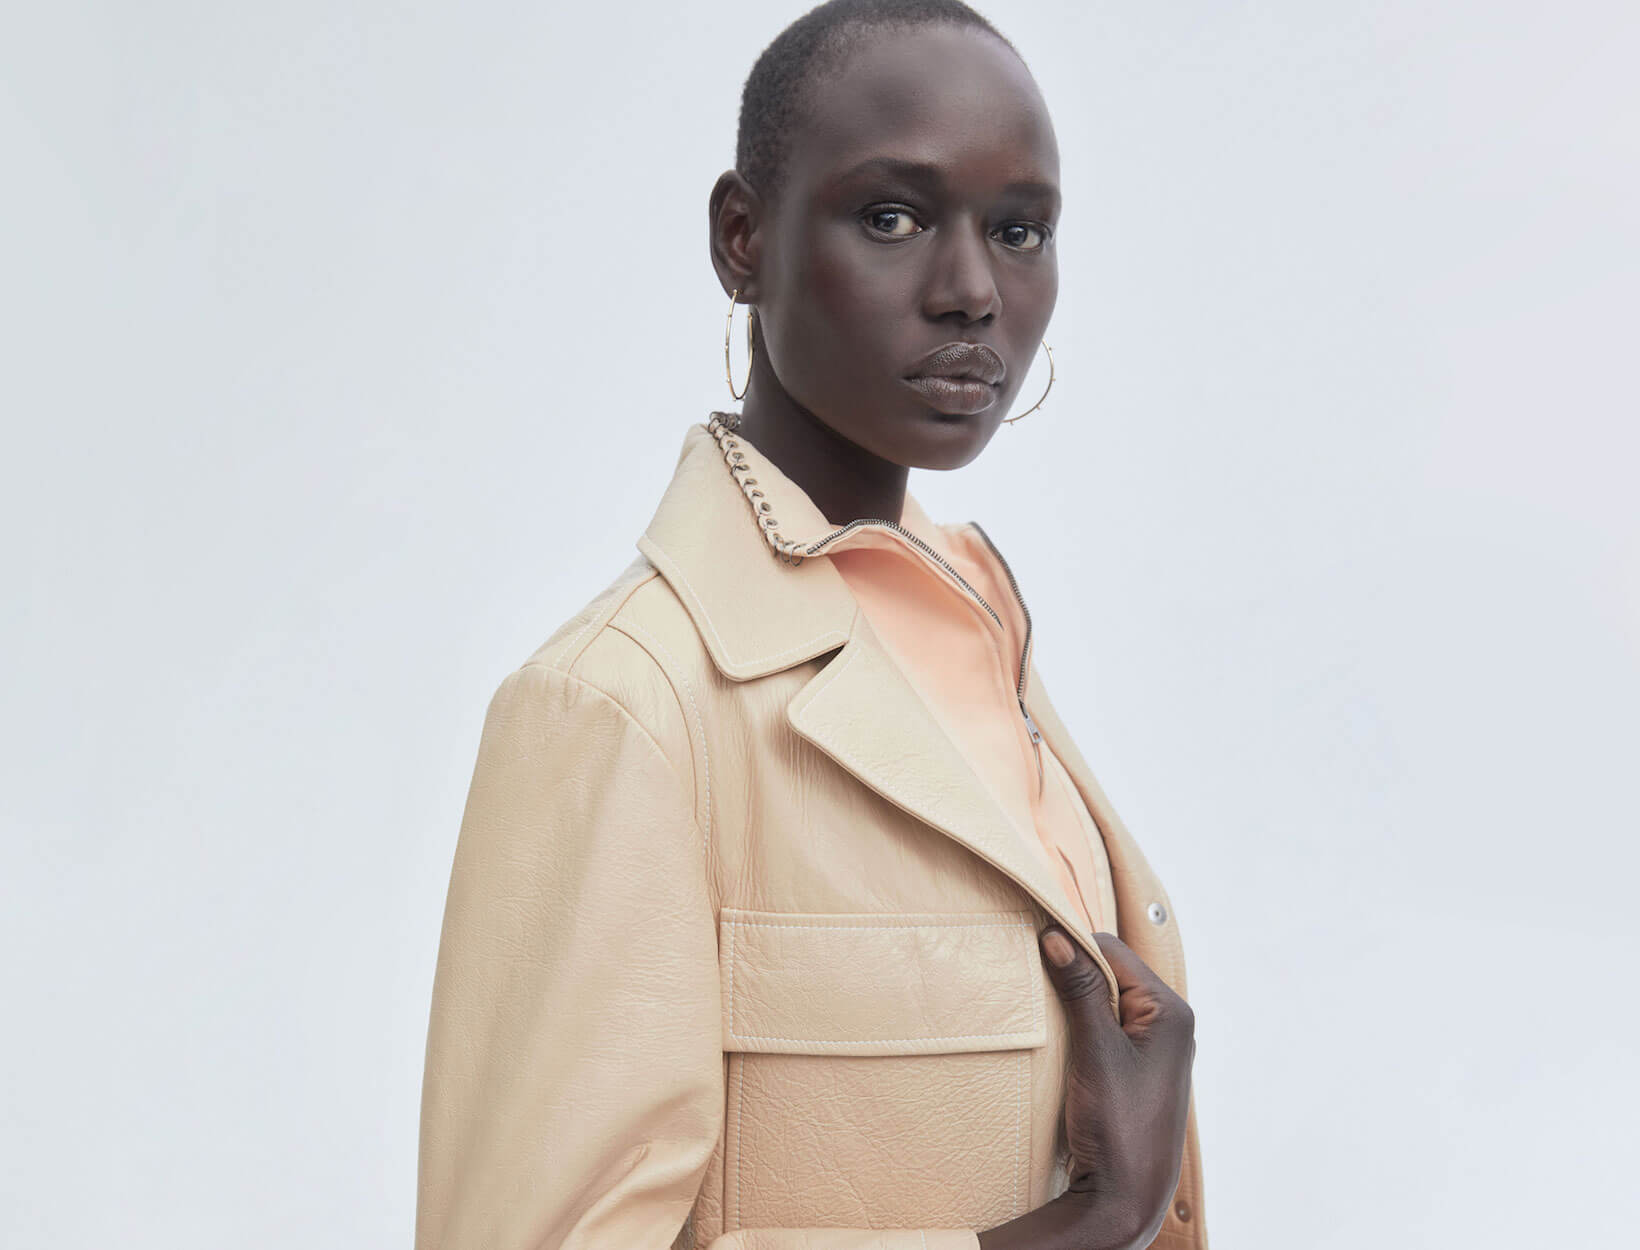 a model in a tan jacket